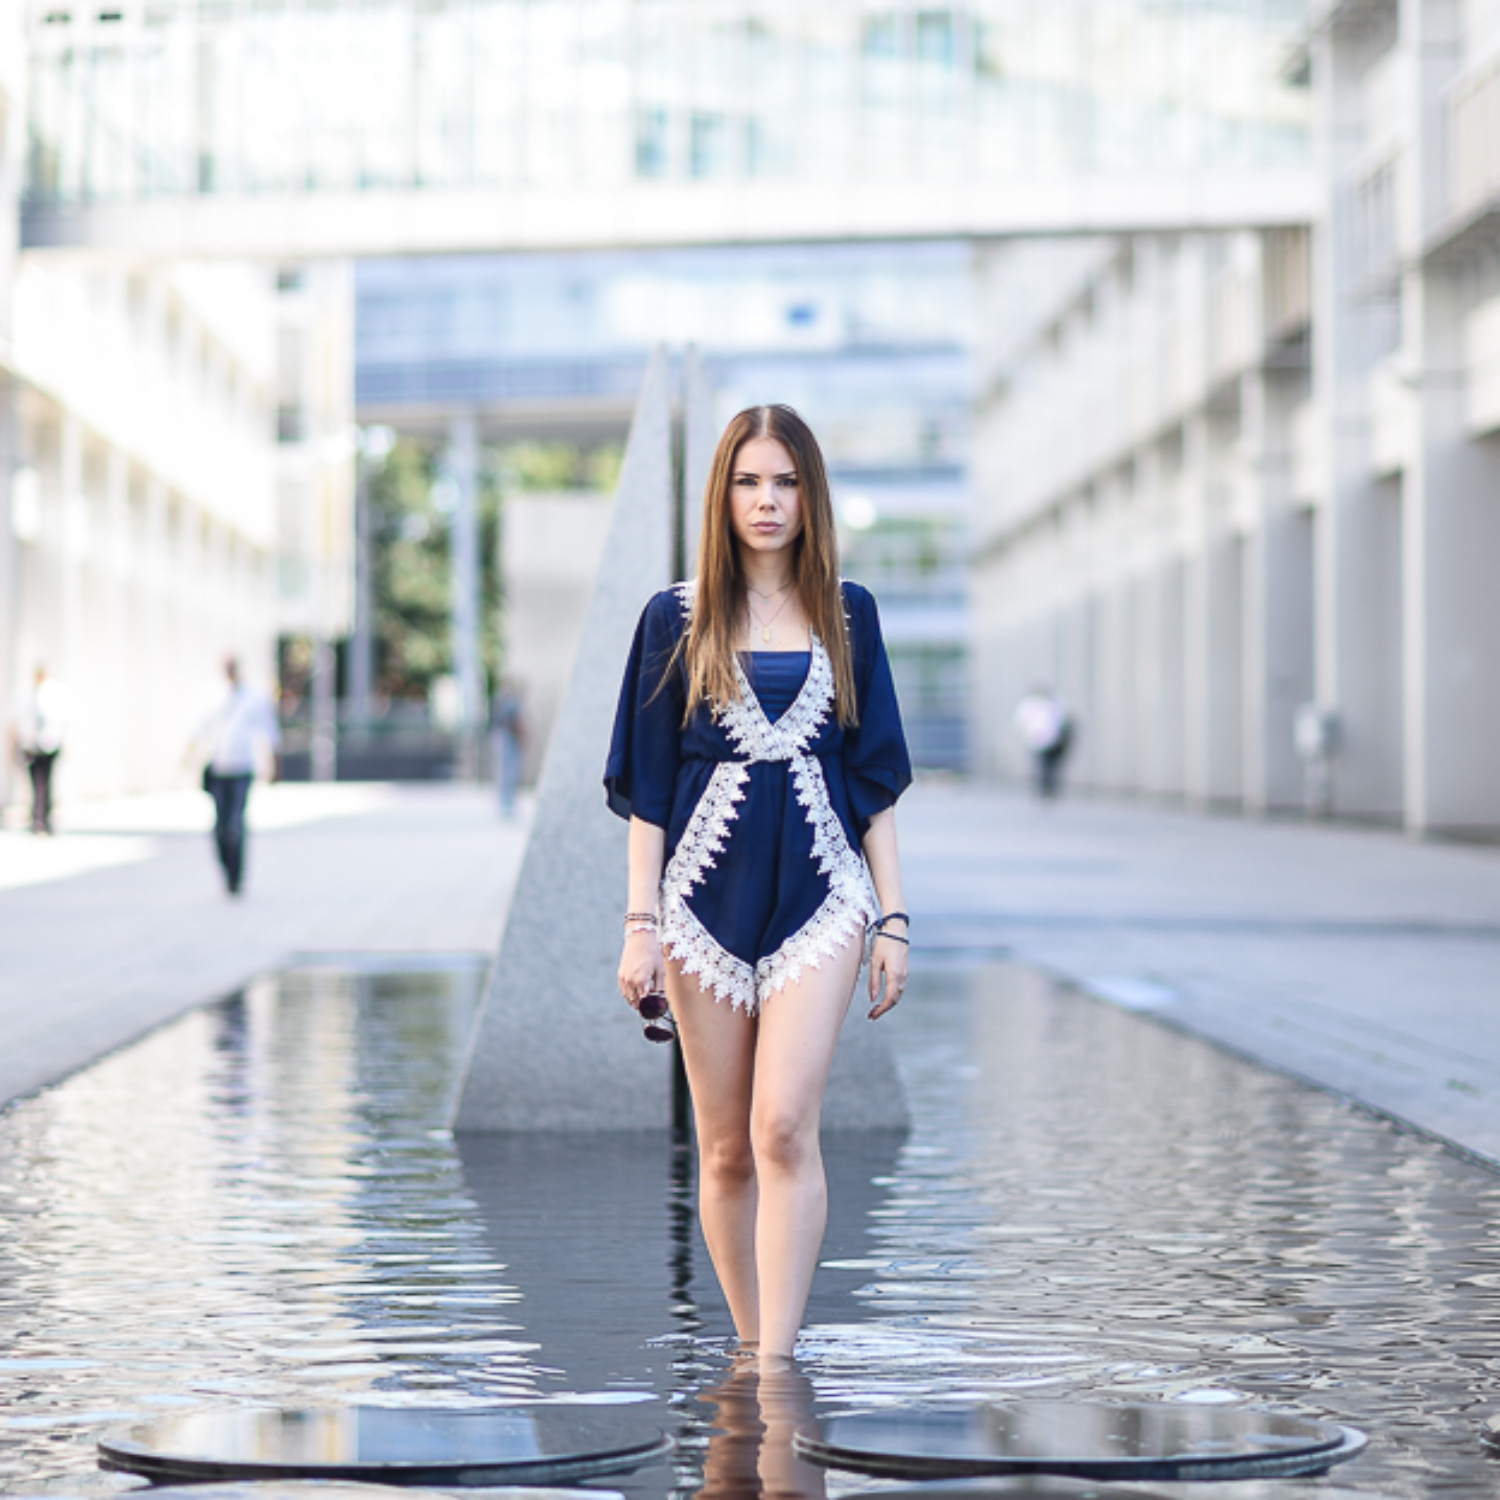 Playsuit for a hot summer day in Munich